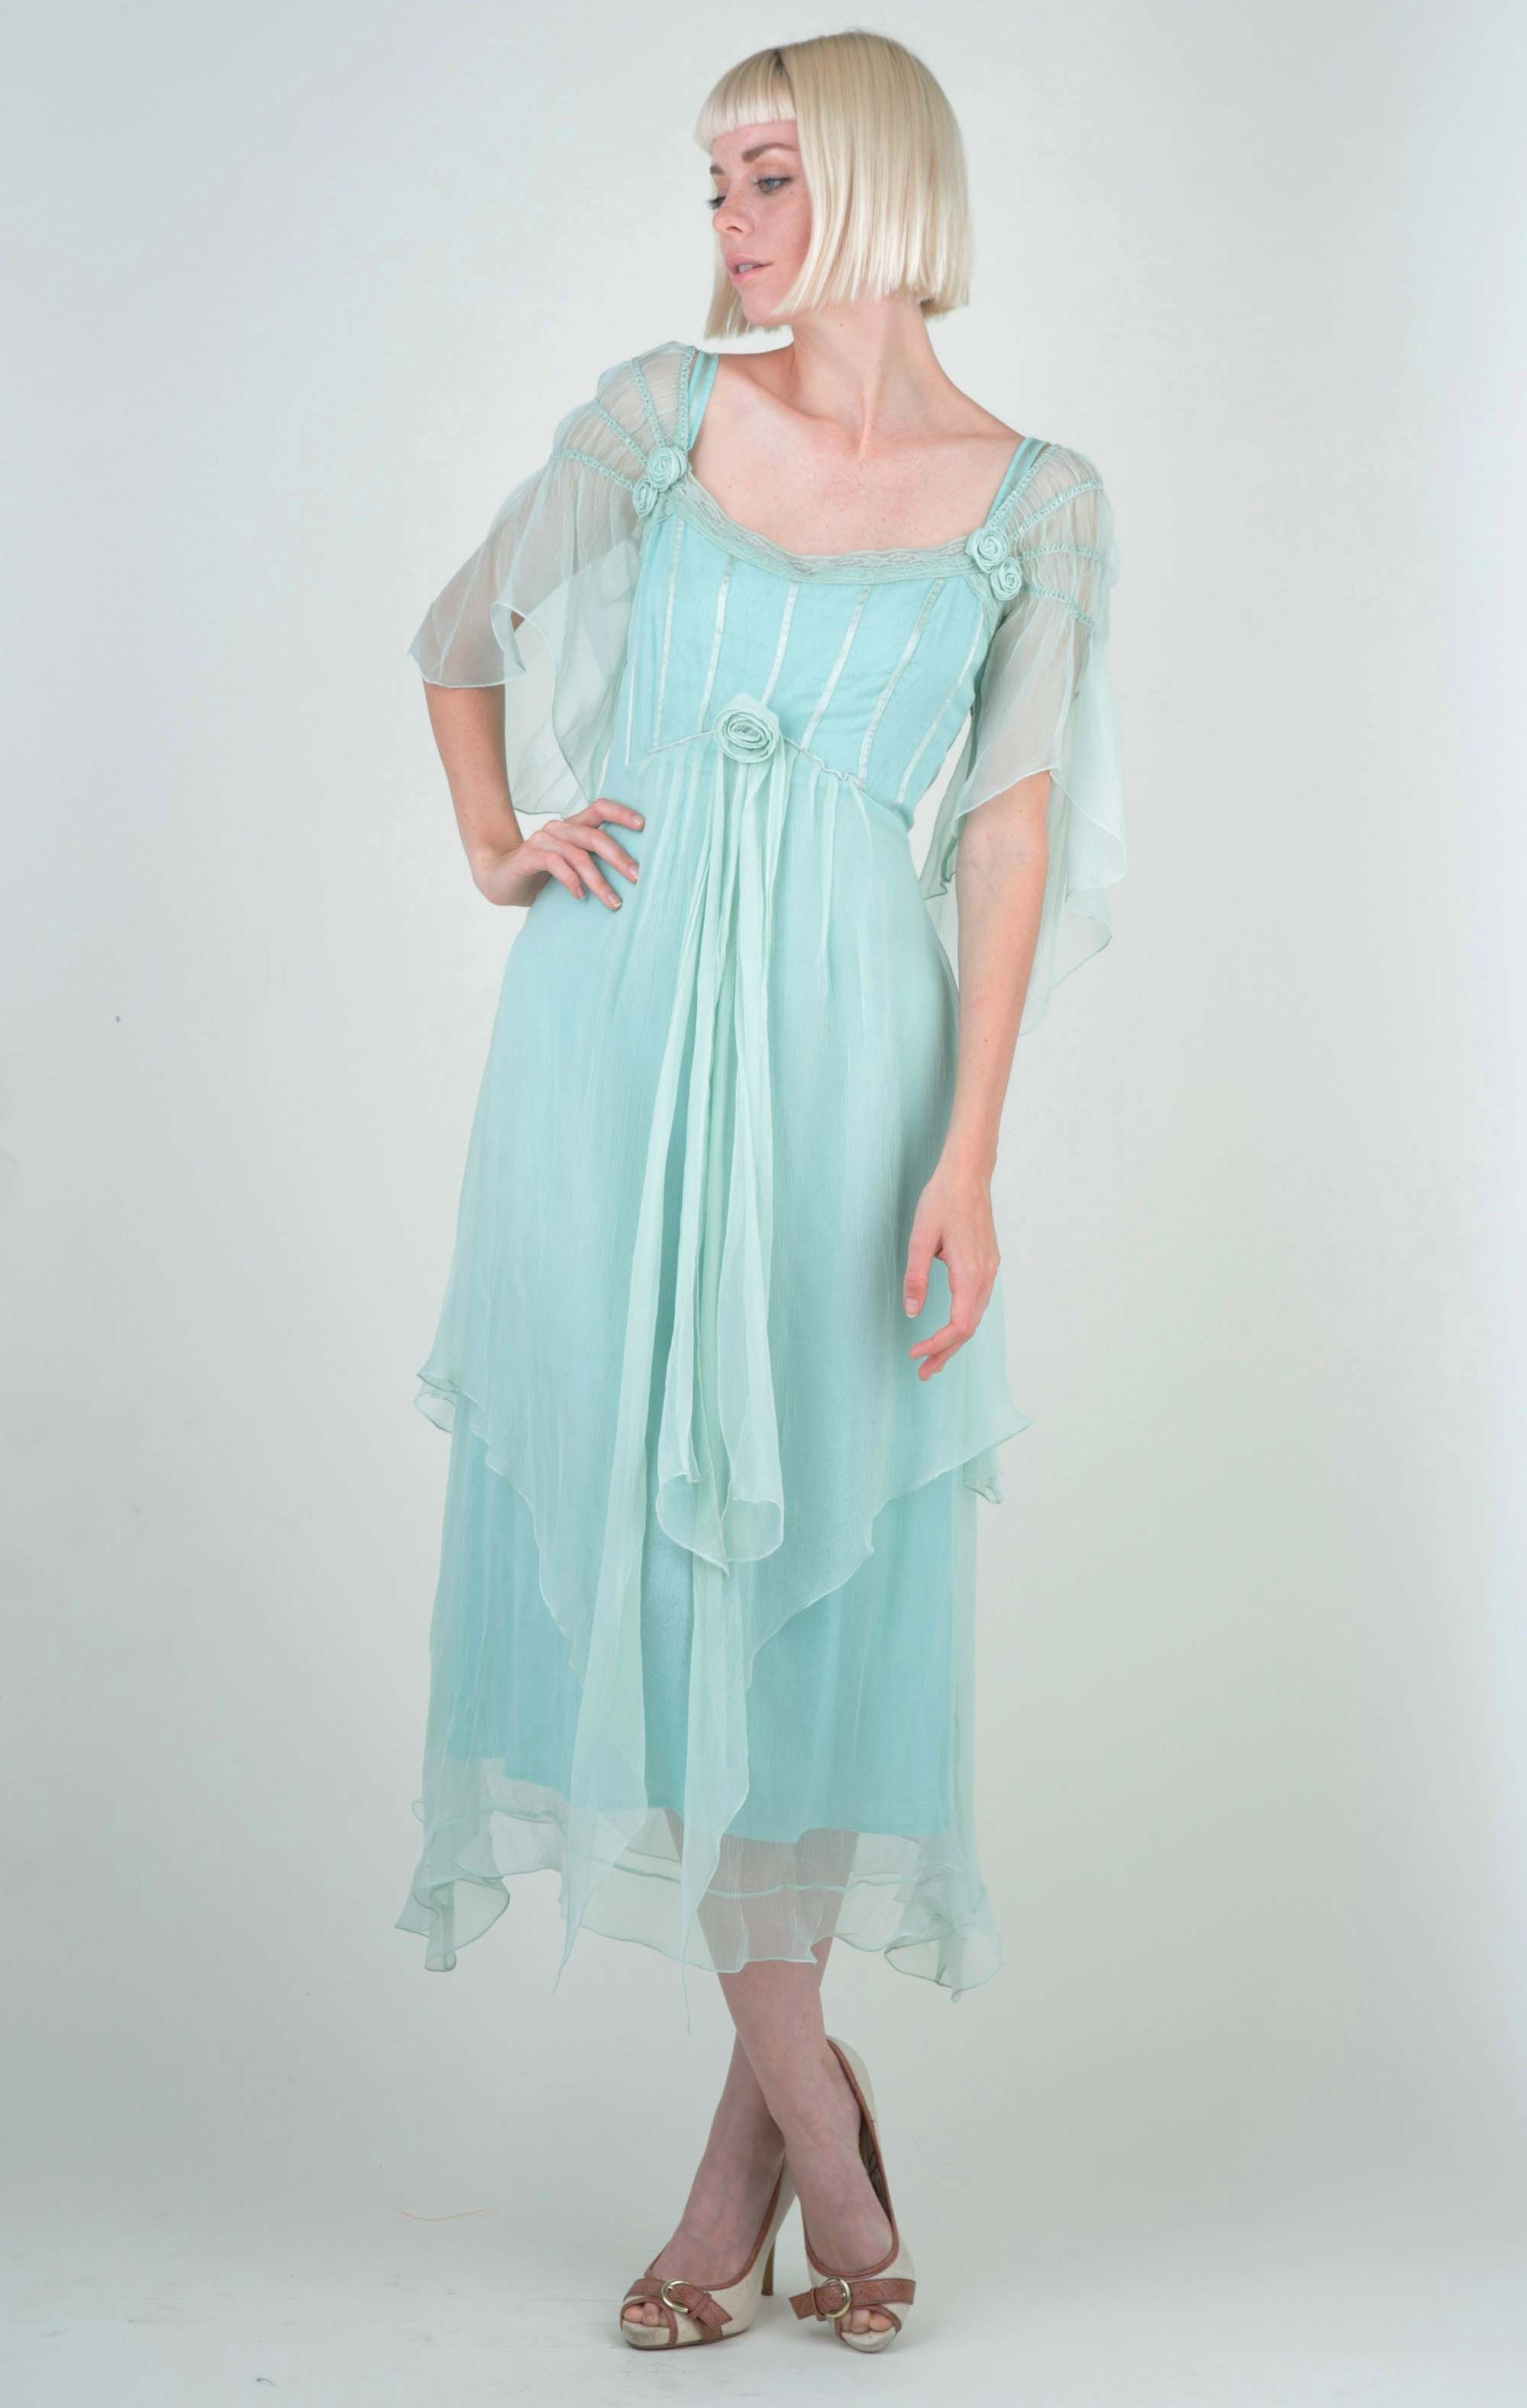 Othelia Off-Shoulder Summer Party Dress in Mint by Nataya - SOLD OUT ...